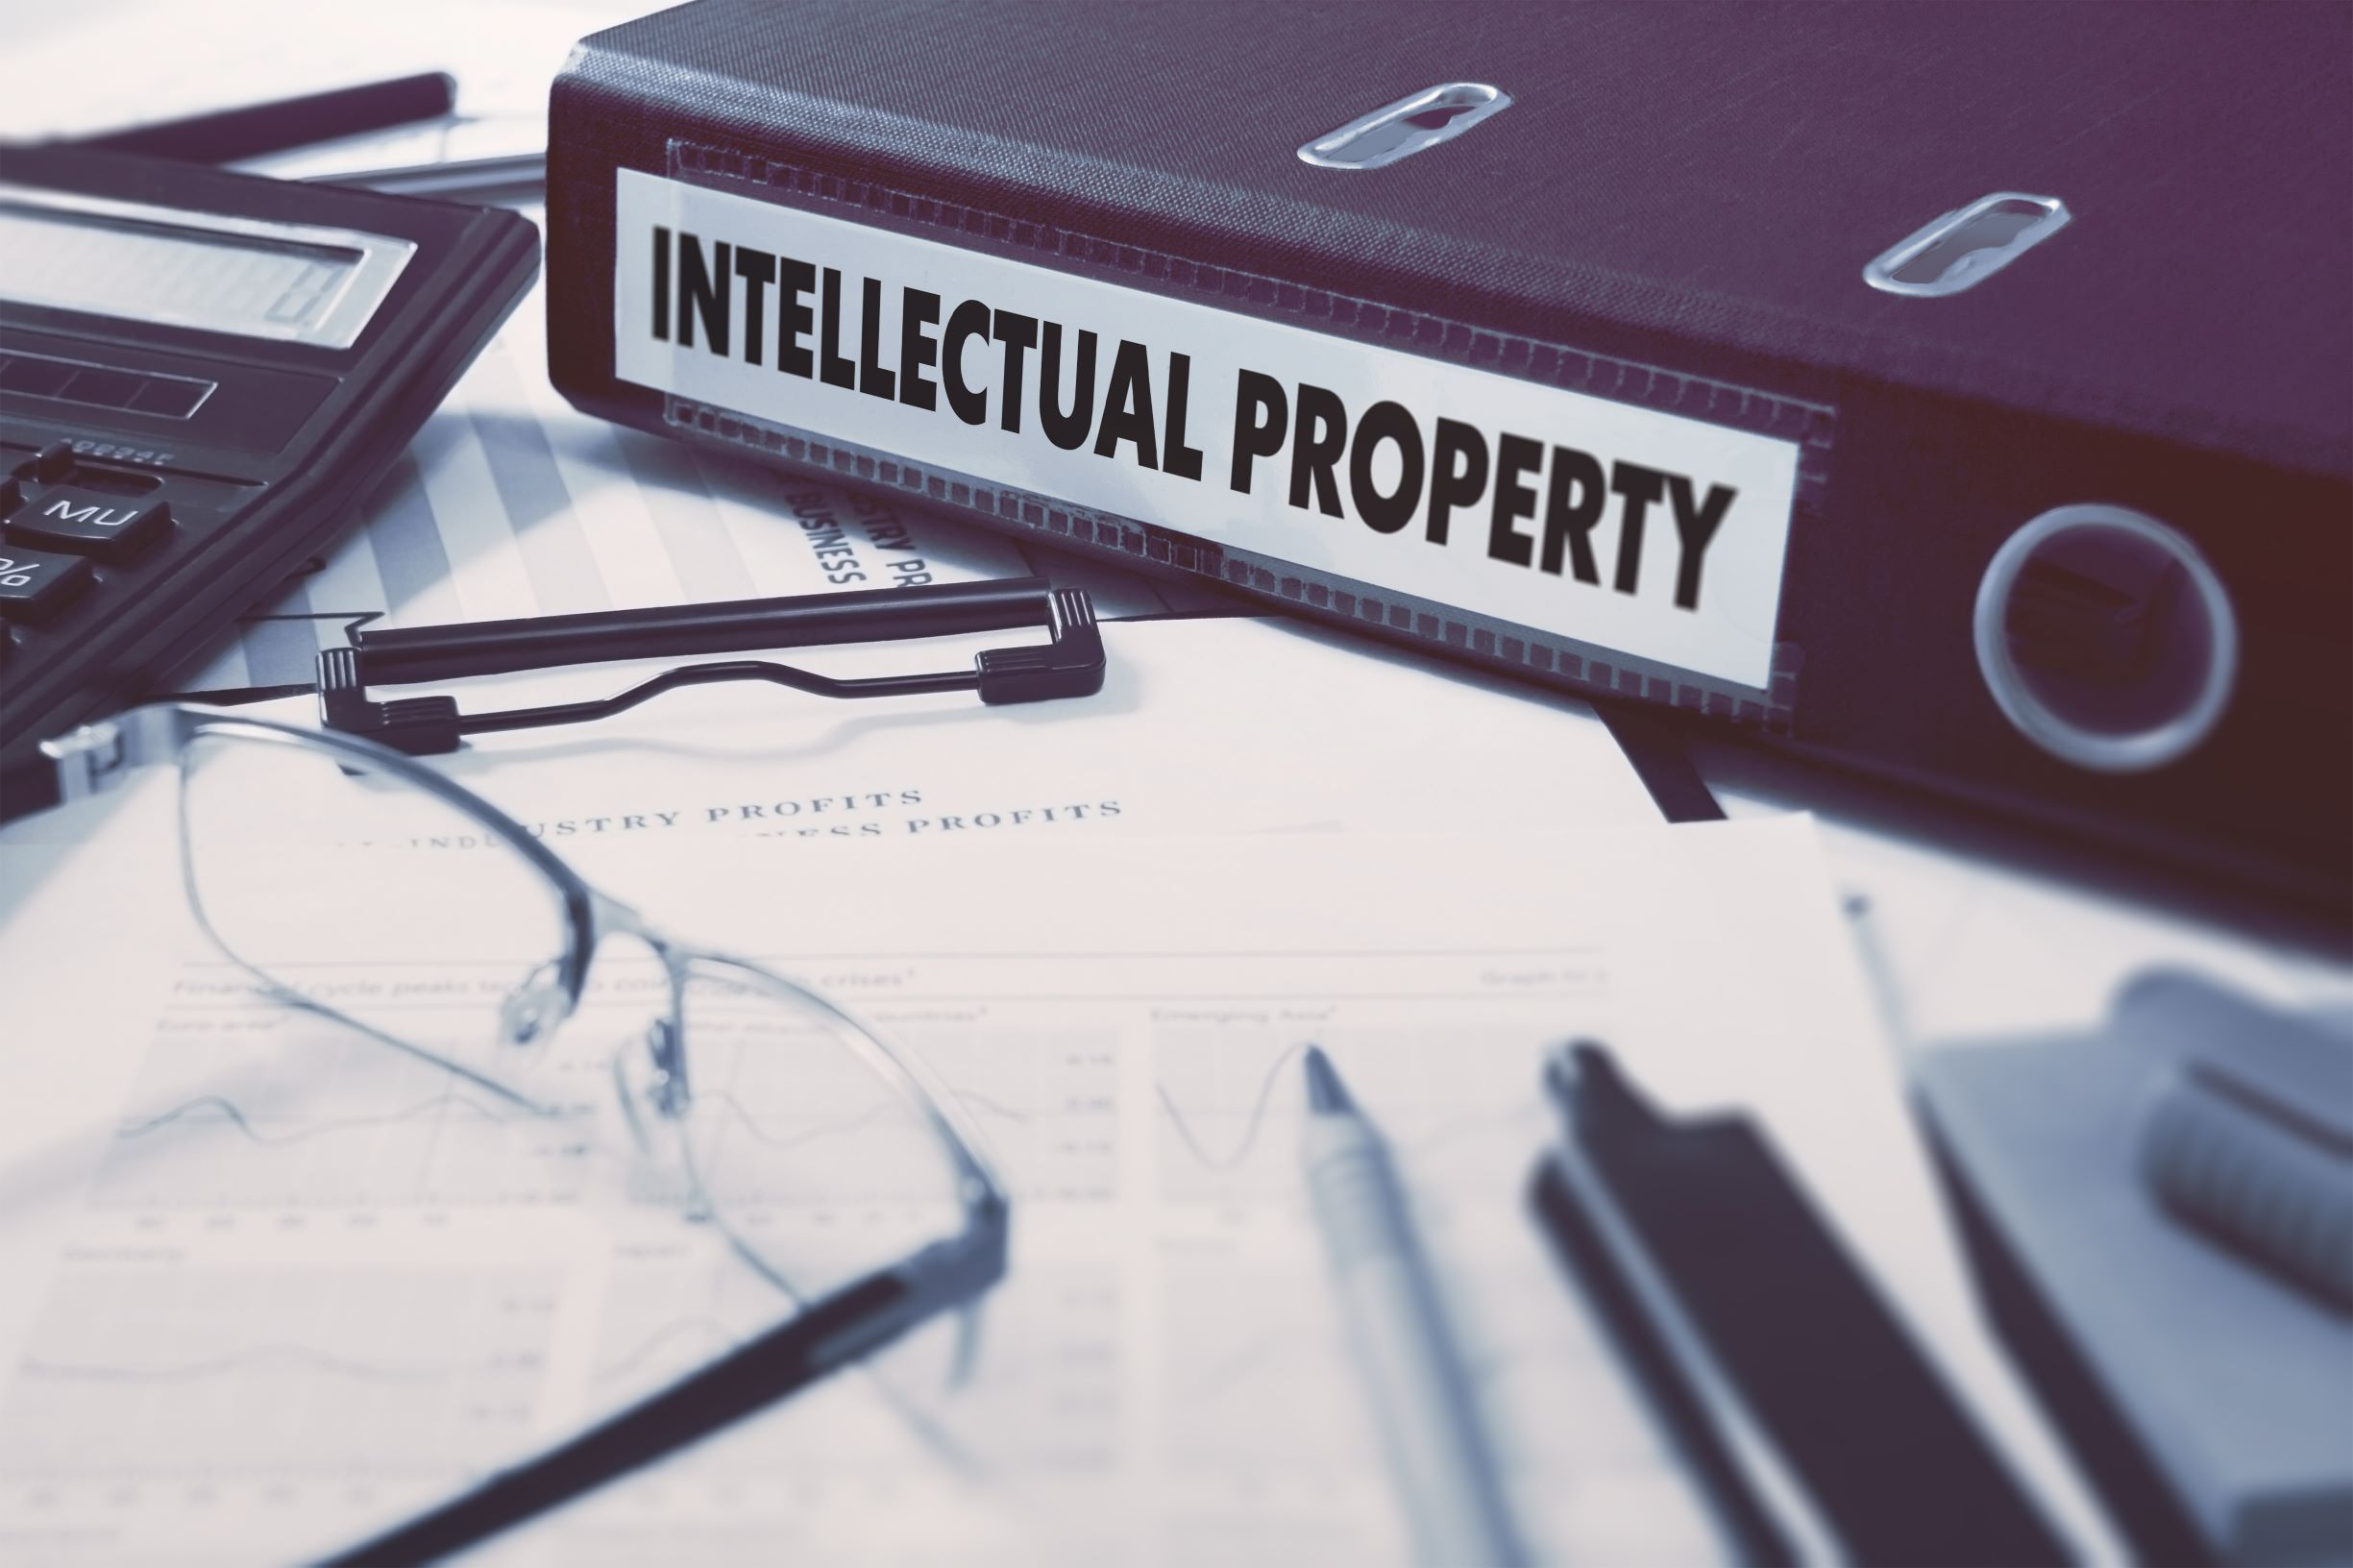 Intellectual Property Folder